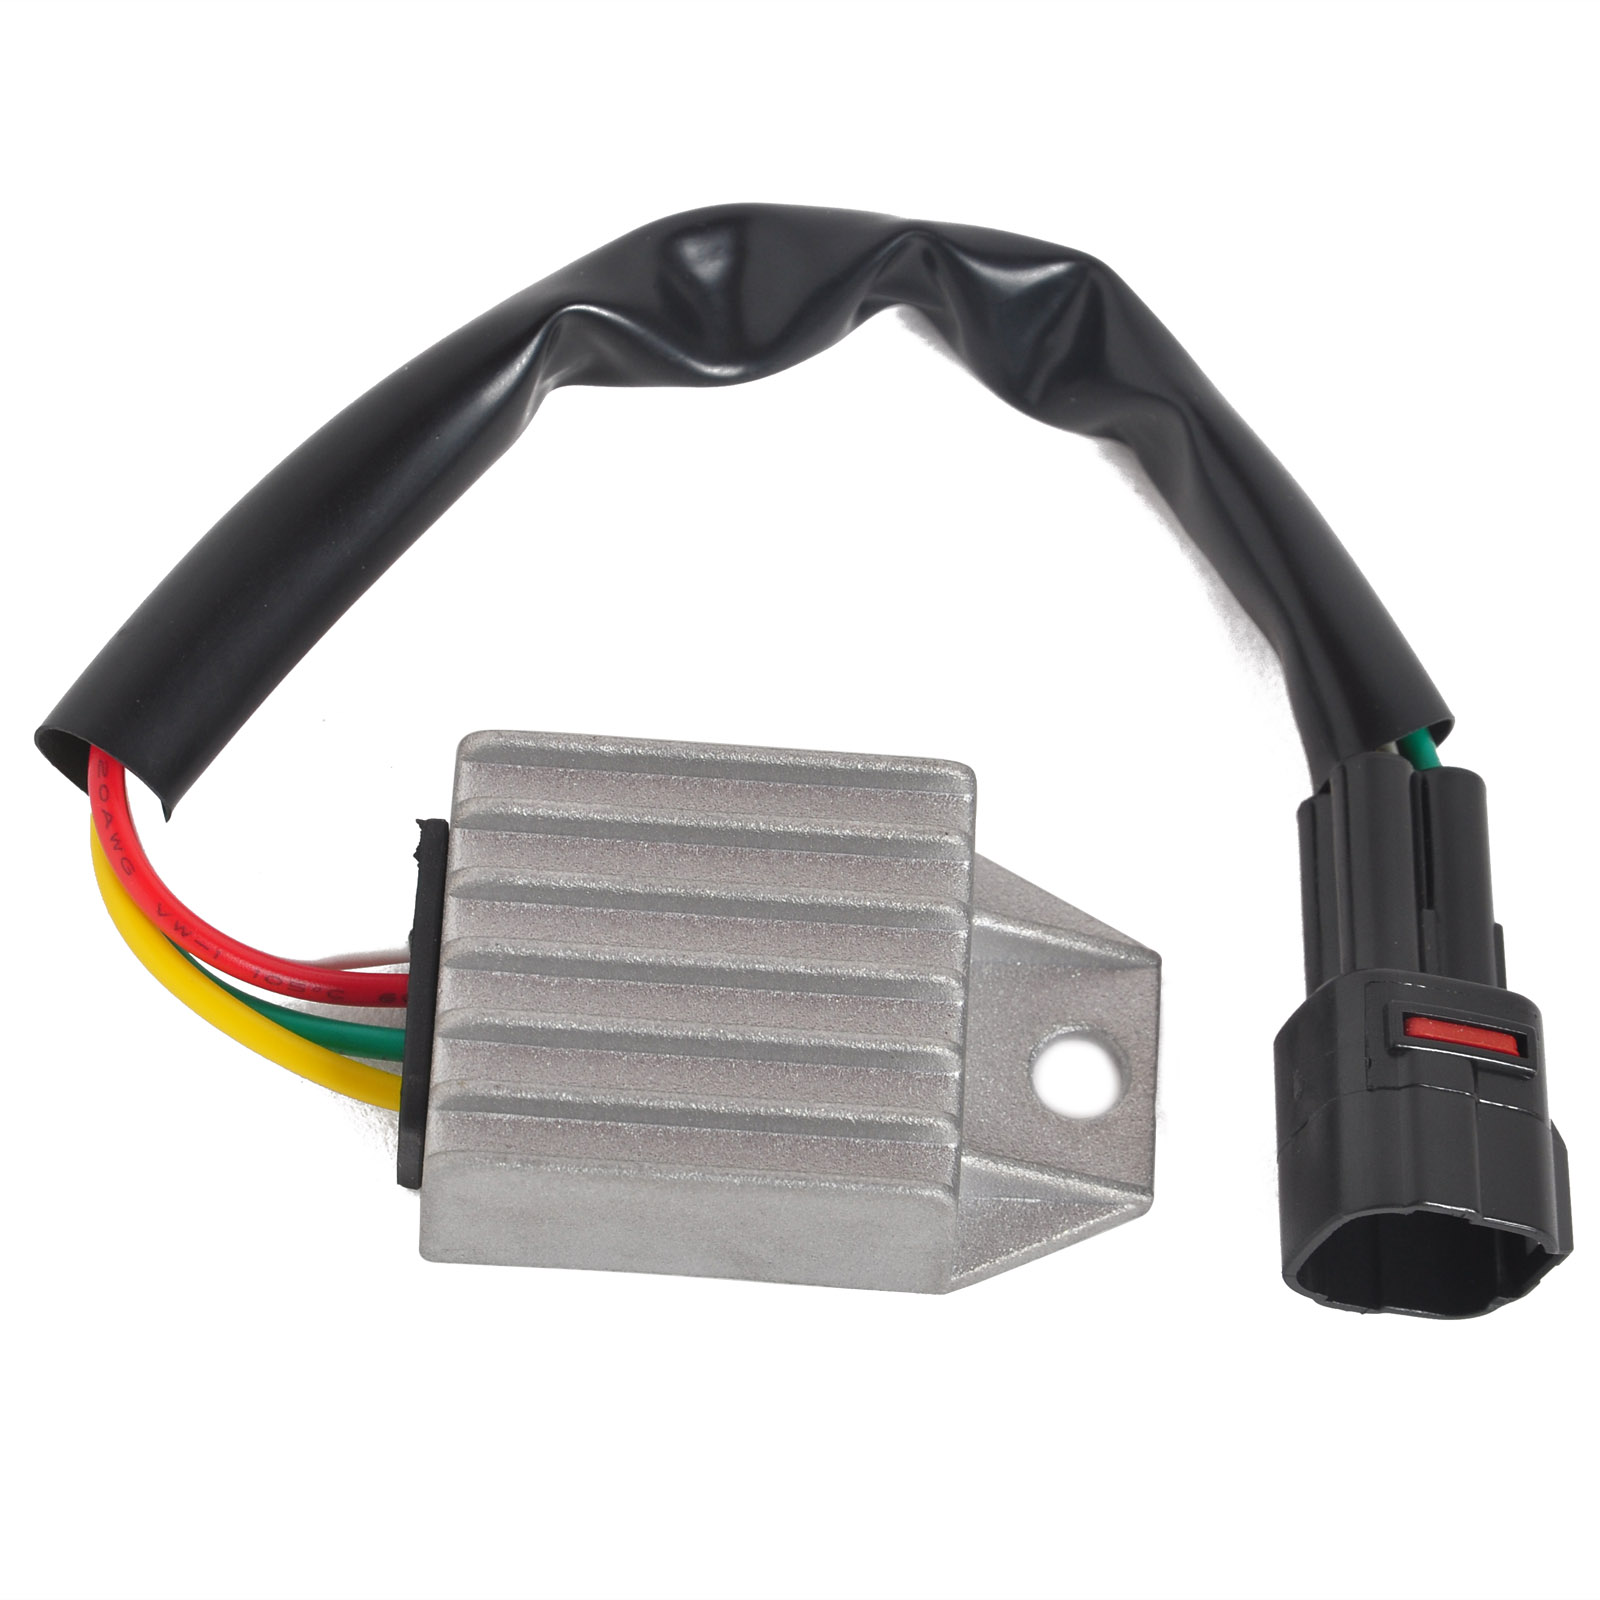 Mayitr Motorcycle Aluminum Voltage Regulator Rectifier for KTM 660 SMC 2004-2005 450 EXC-R 250 XCF-W EXC-F 530 XC-W 525 EXC motorcycle front and rear brake pads for ktm xc exc 200 2004 2008 xc exc 250 400 450 2004 2007 sintered brake disc pad